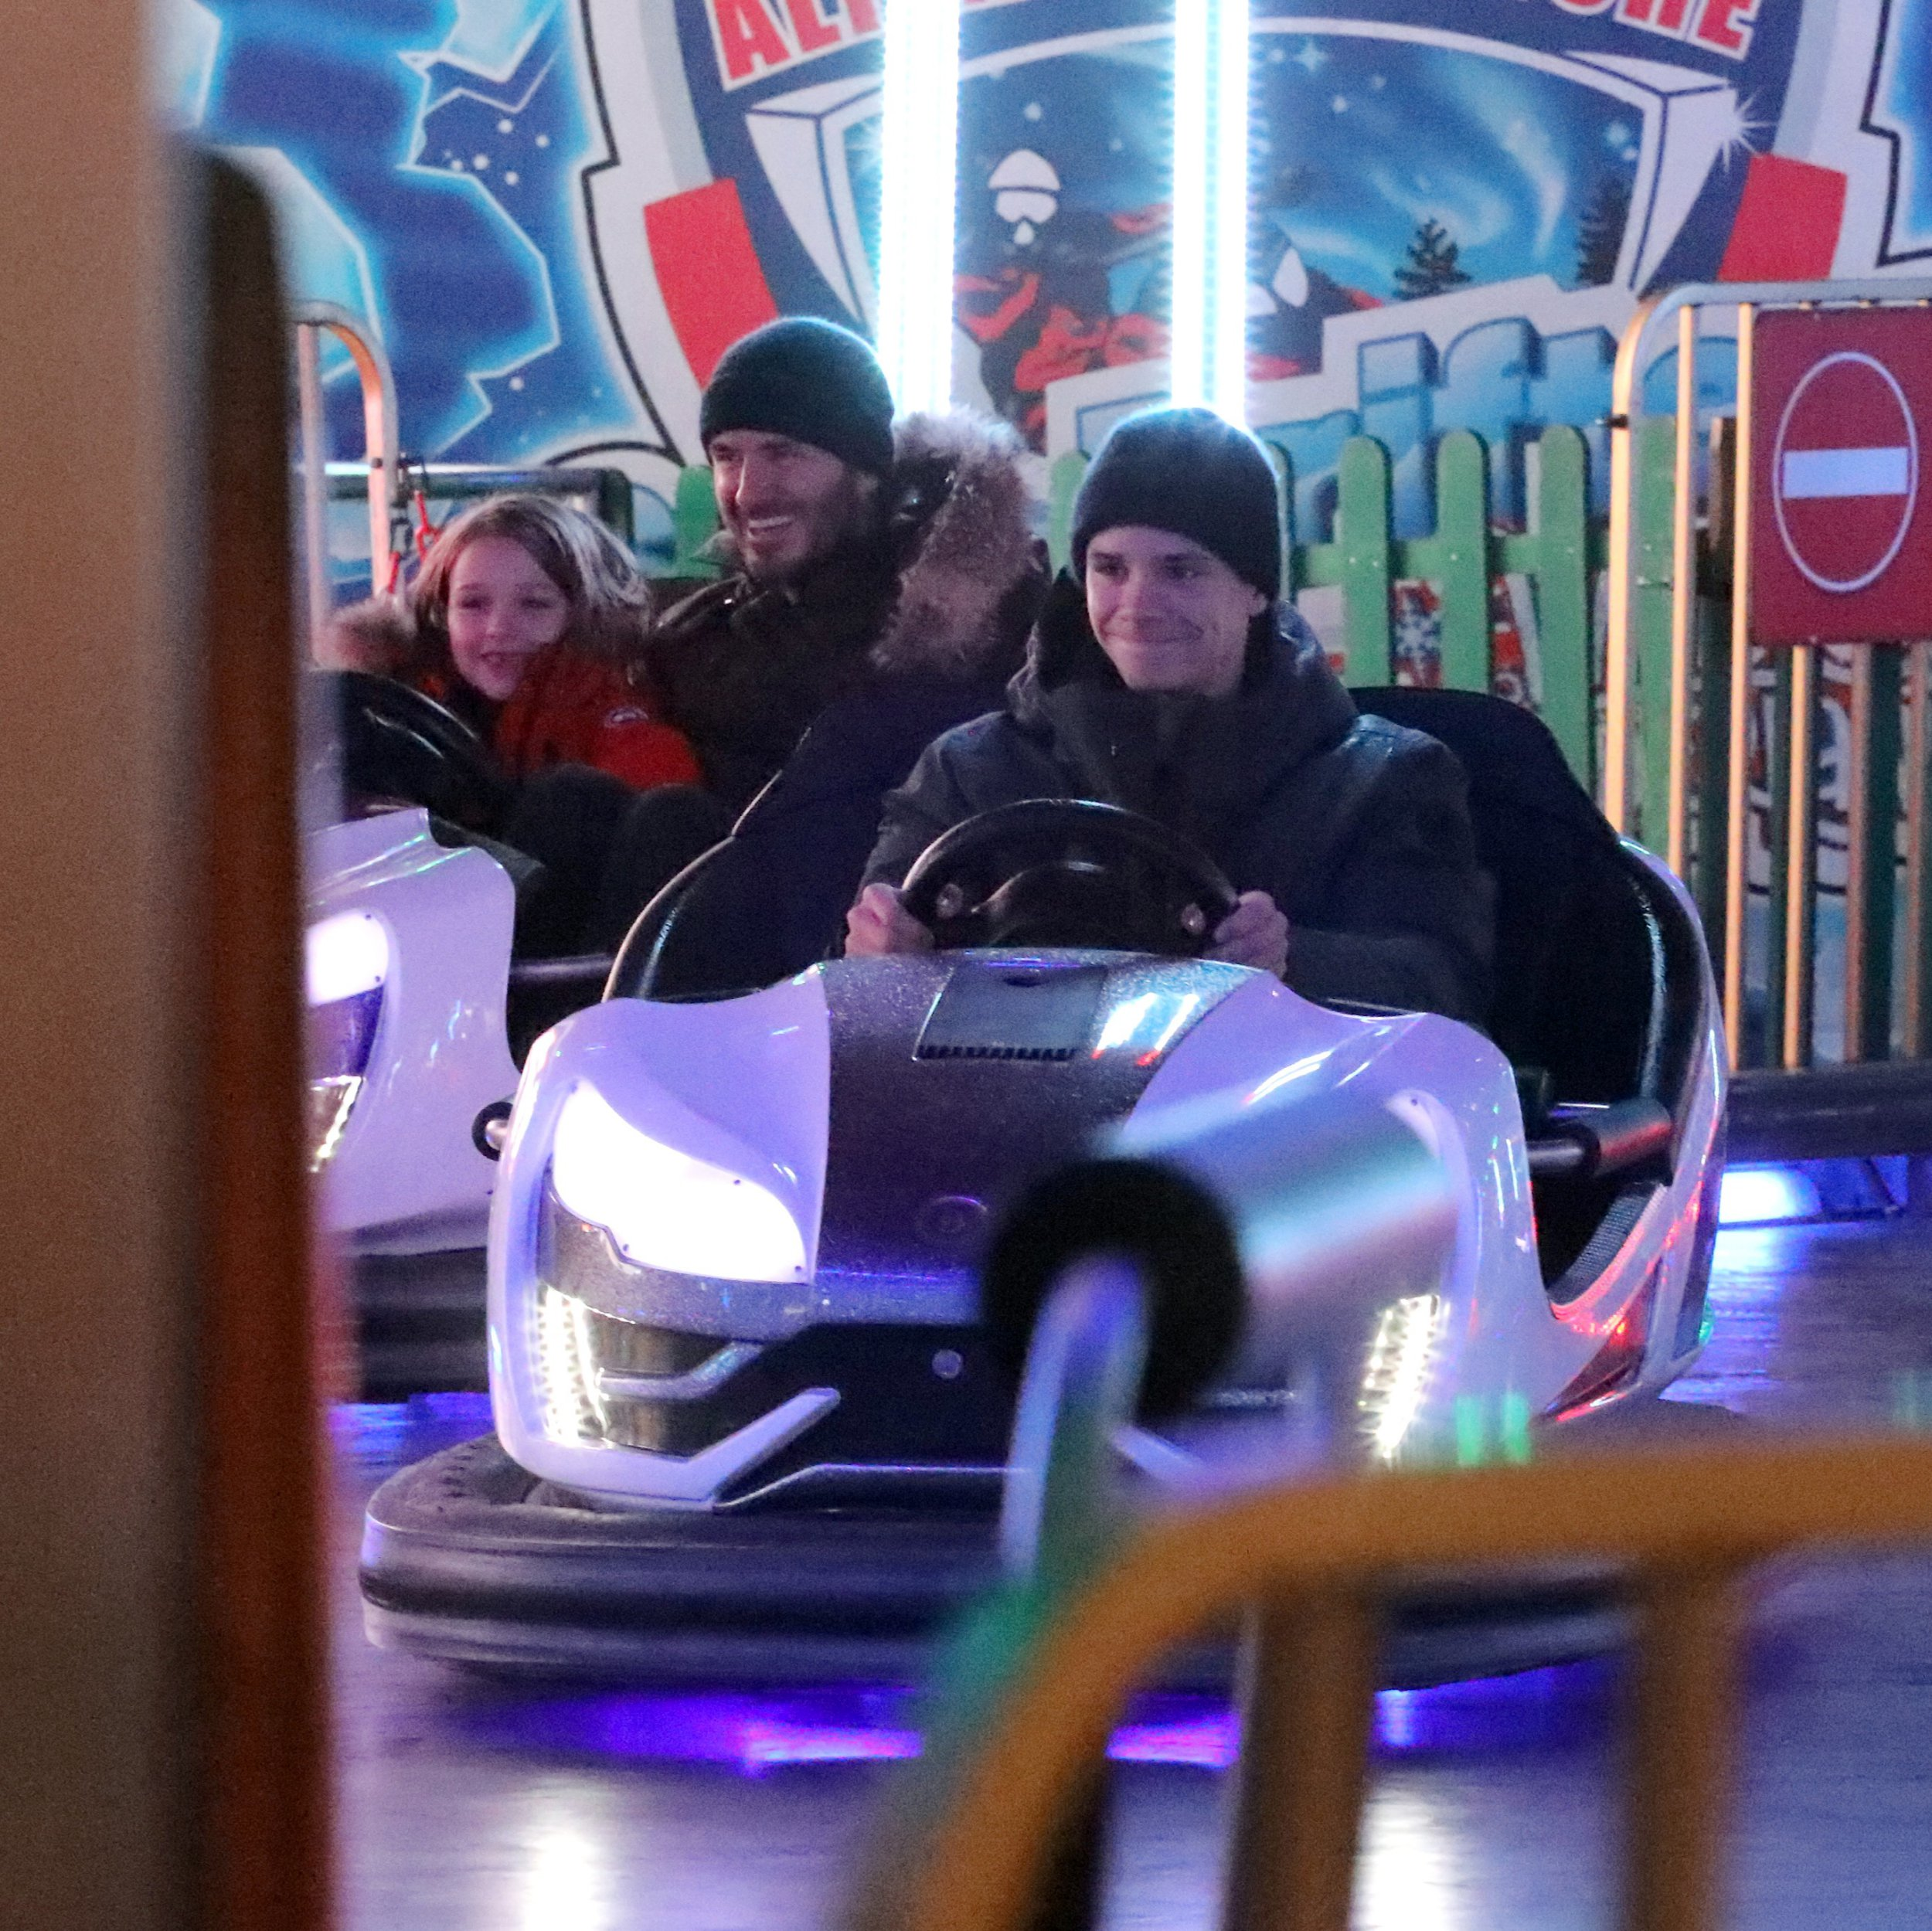 EXCLUSIVE: *NO WEB UNTIL 10AM GMT 30TH NOV MIN FEE TO BE AGREED BEFORE REPRO* David Beckham and daughter Harper, seven, enjoy hot dogs and a whizz around the dodgems as they enjoy a festive family day at Winter Wonderland. 28 Nov 2018 Pictured: David Beckham with children Cruz, Romeo and Harper. Photo credit: MEGA TheMegaAgency.com +1 888 505 6342 (Mega Agency TagID: MEGA315292_001.jpg) [Photo via Mega Agency]